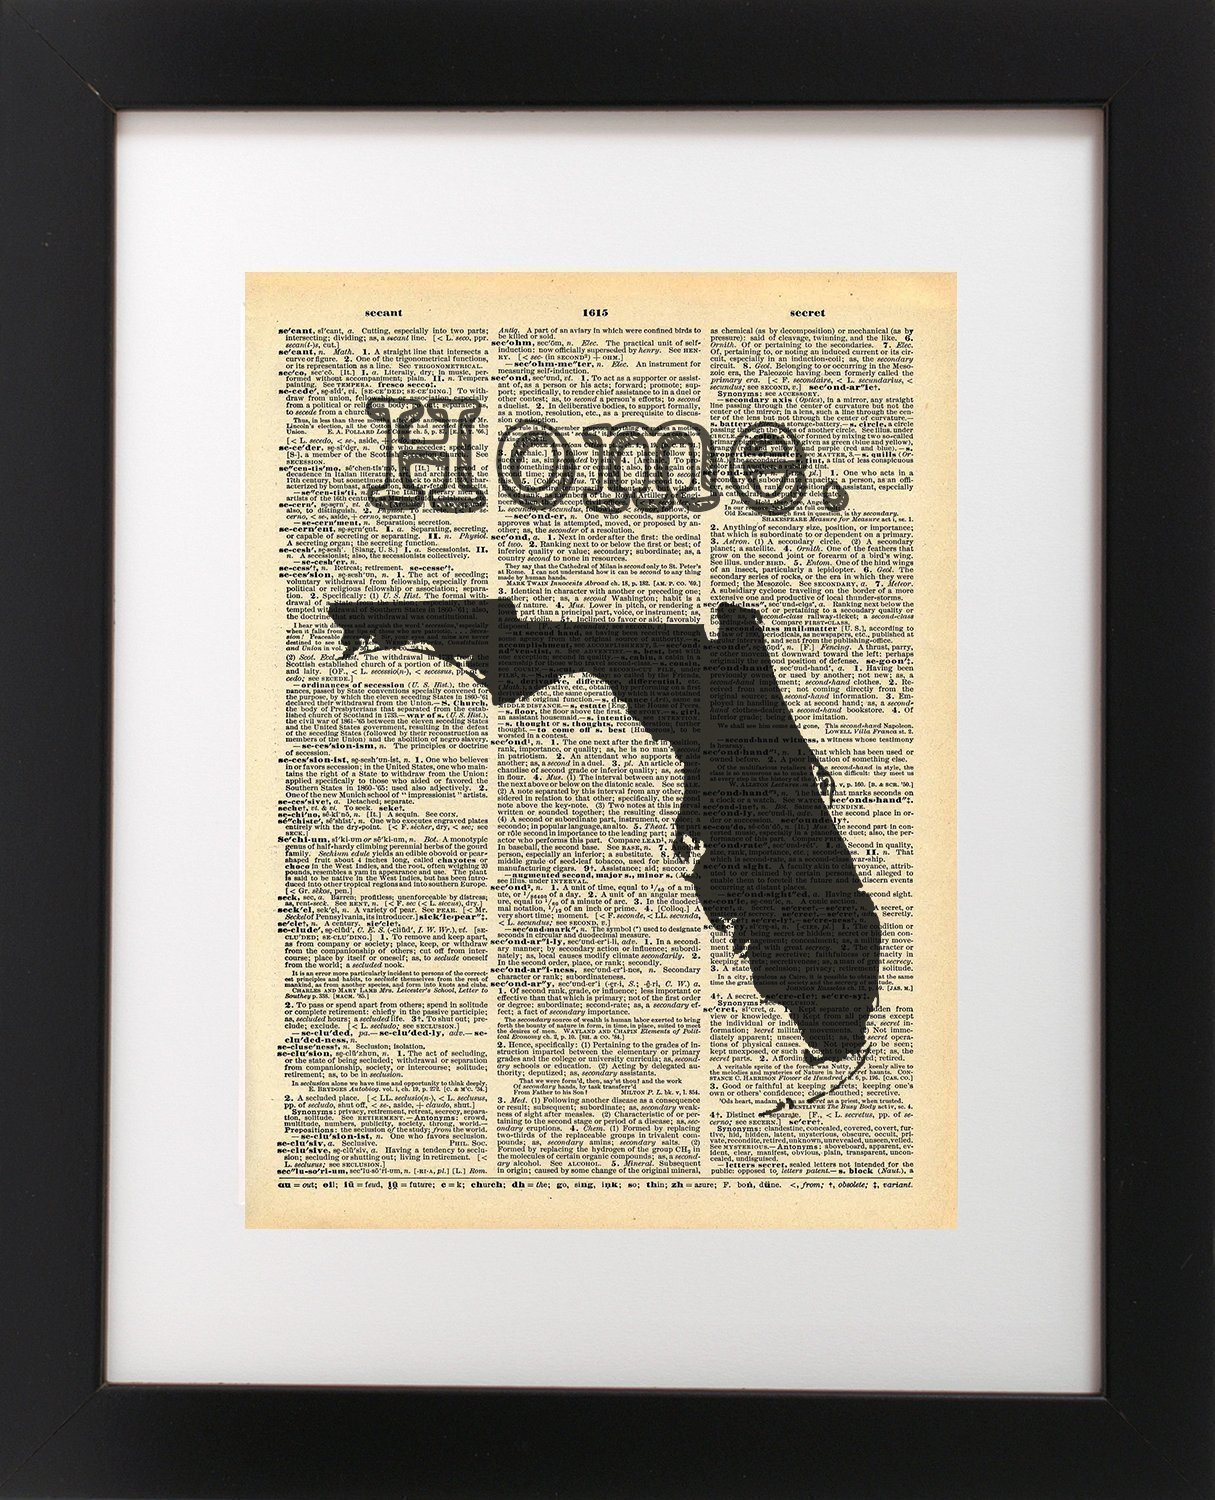 Florida State Vintage Map Dictionary Art Print 8x10 inch Home Vintage Art Abstract Prints Wall Art for Home Decor Wall Decorations For Living Room Bedroom Office Ready-to-Frame